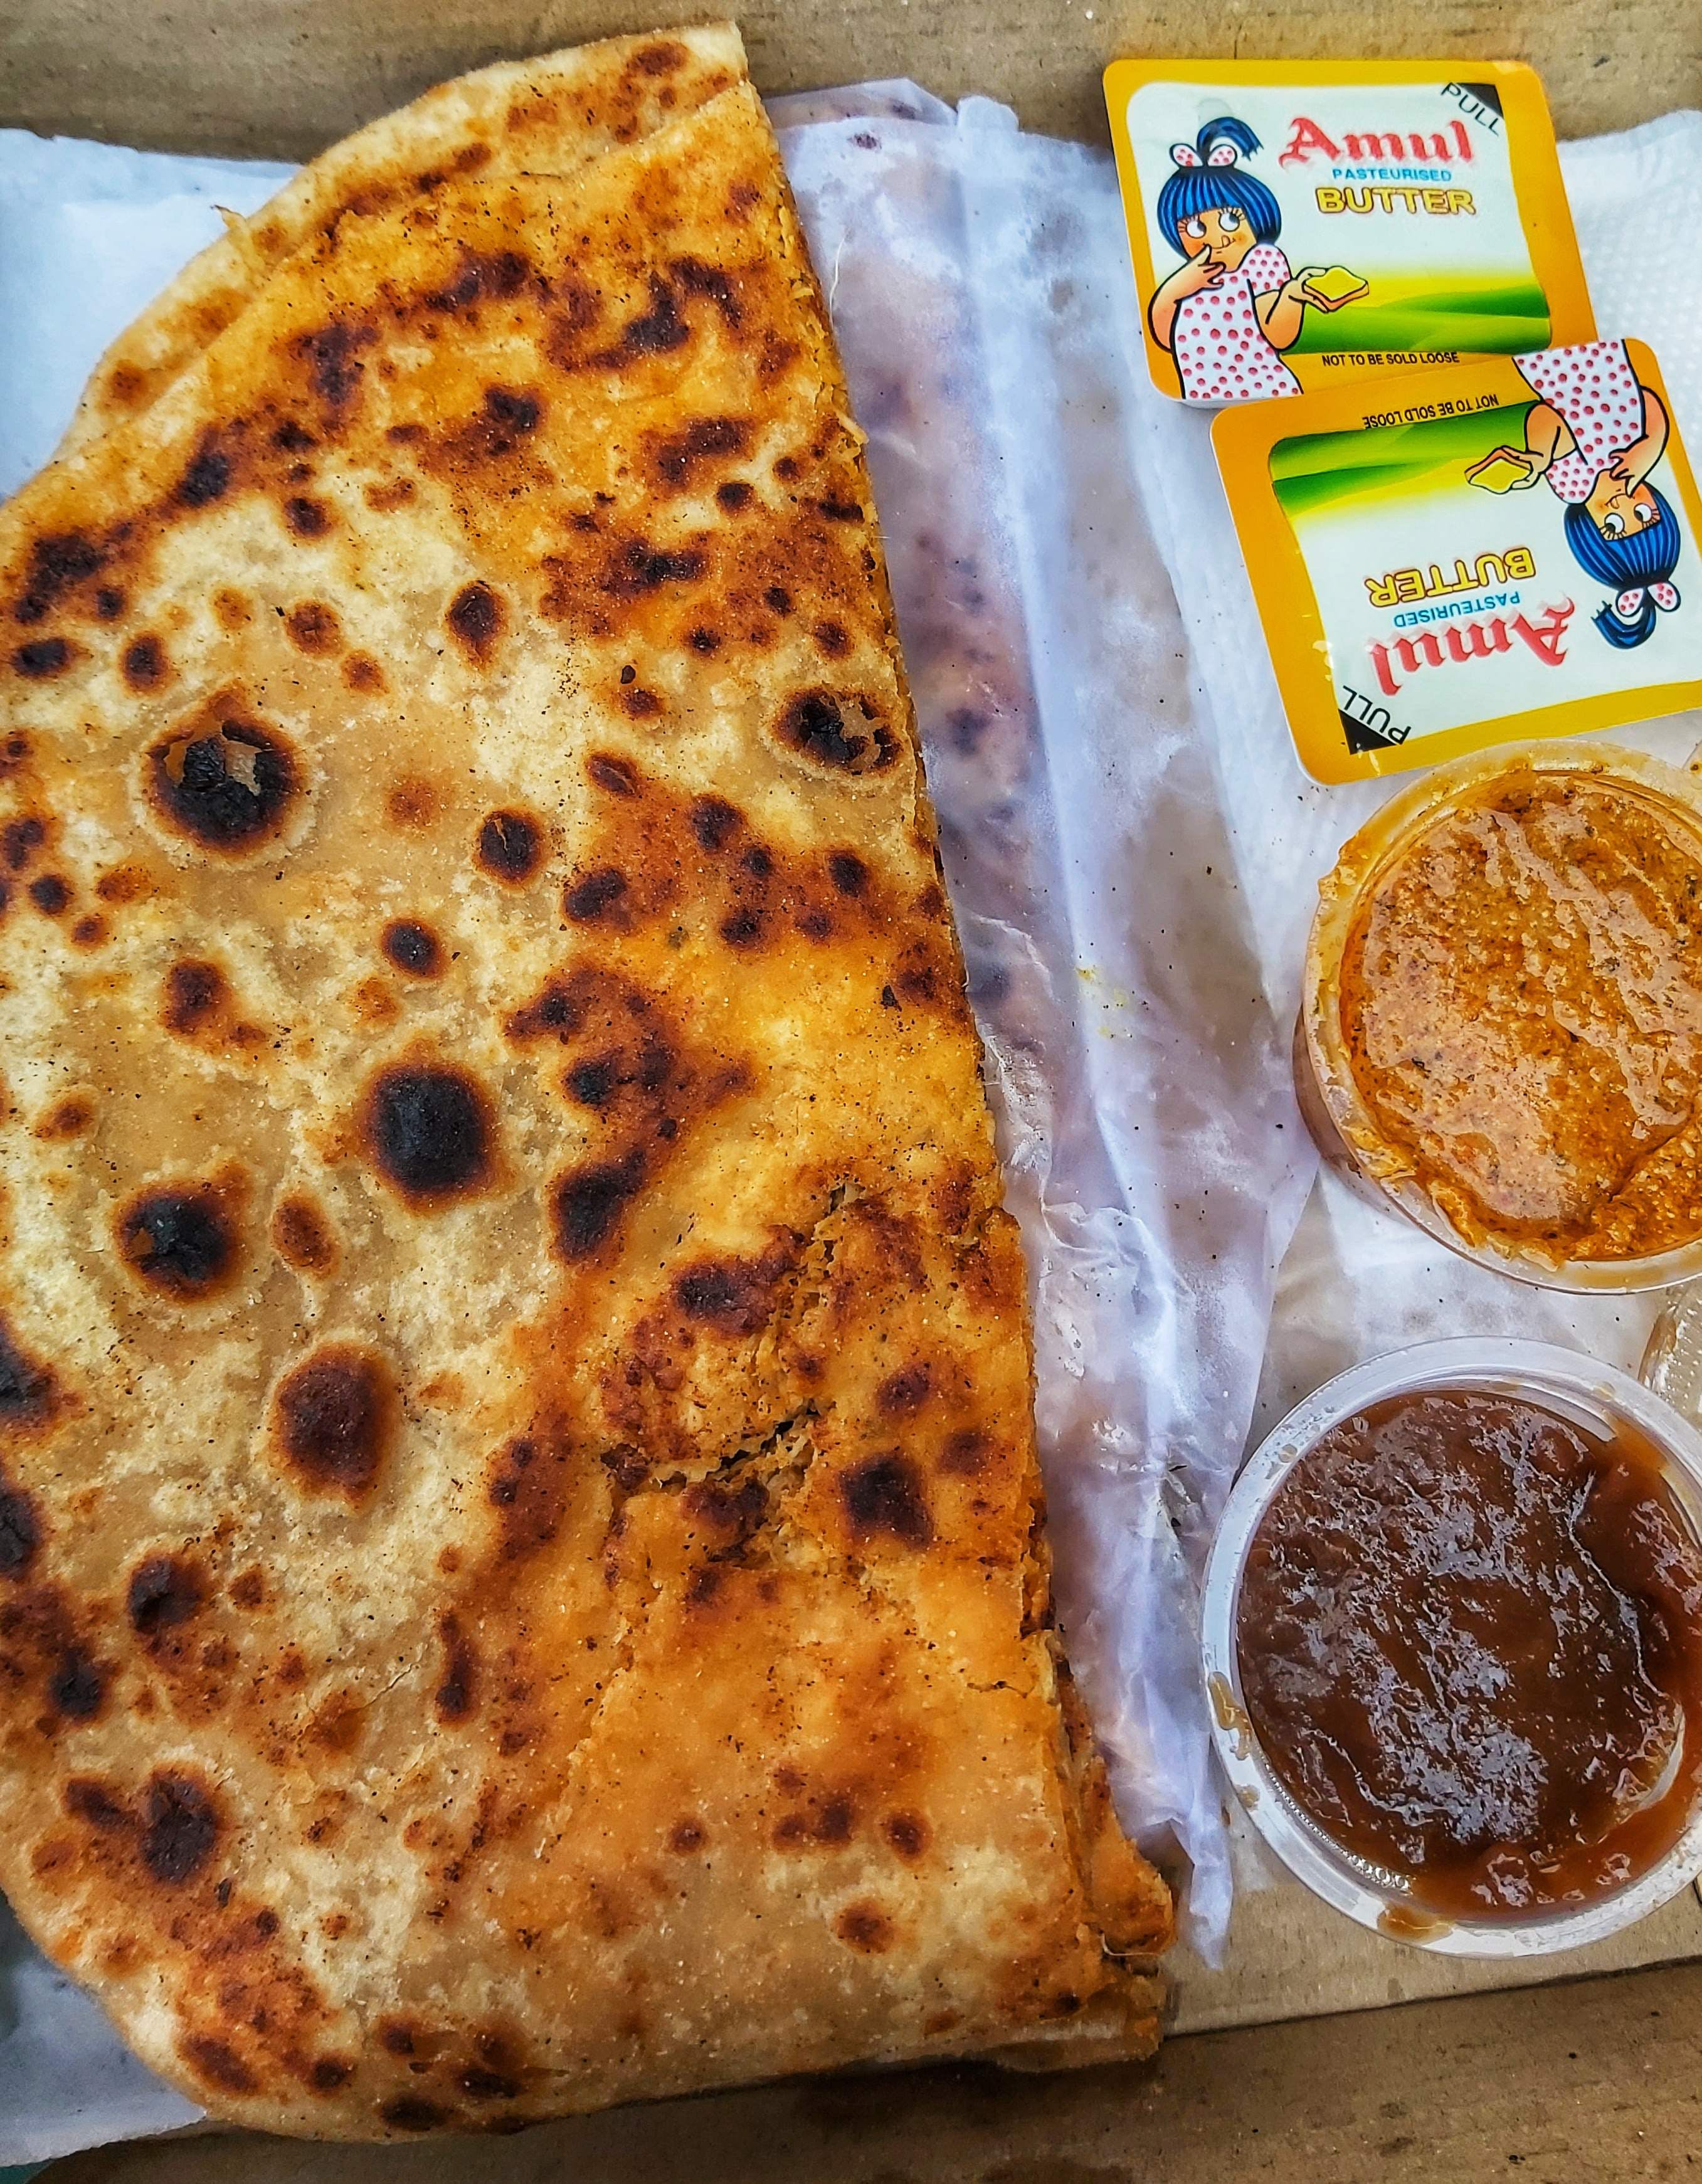 Dish,Food,Cuisine,Ingredient,Flatbread,Baked goods,Staple food,Naan,Paratha,Produce